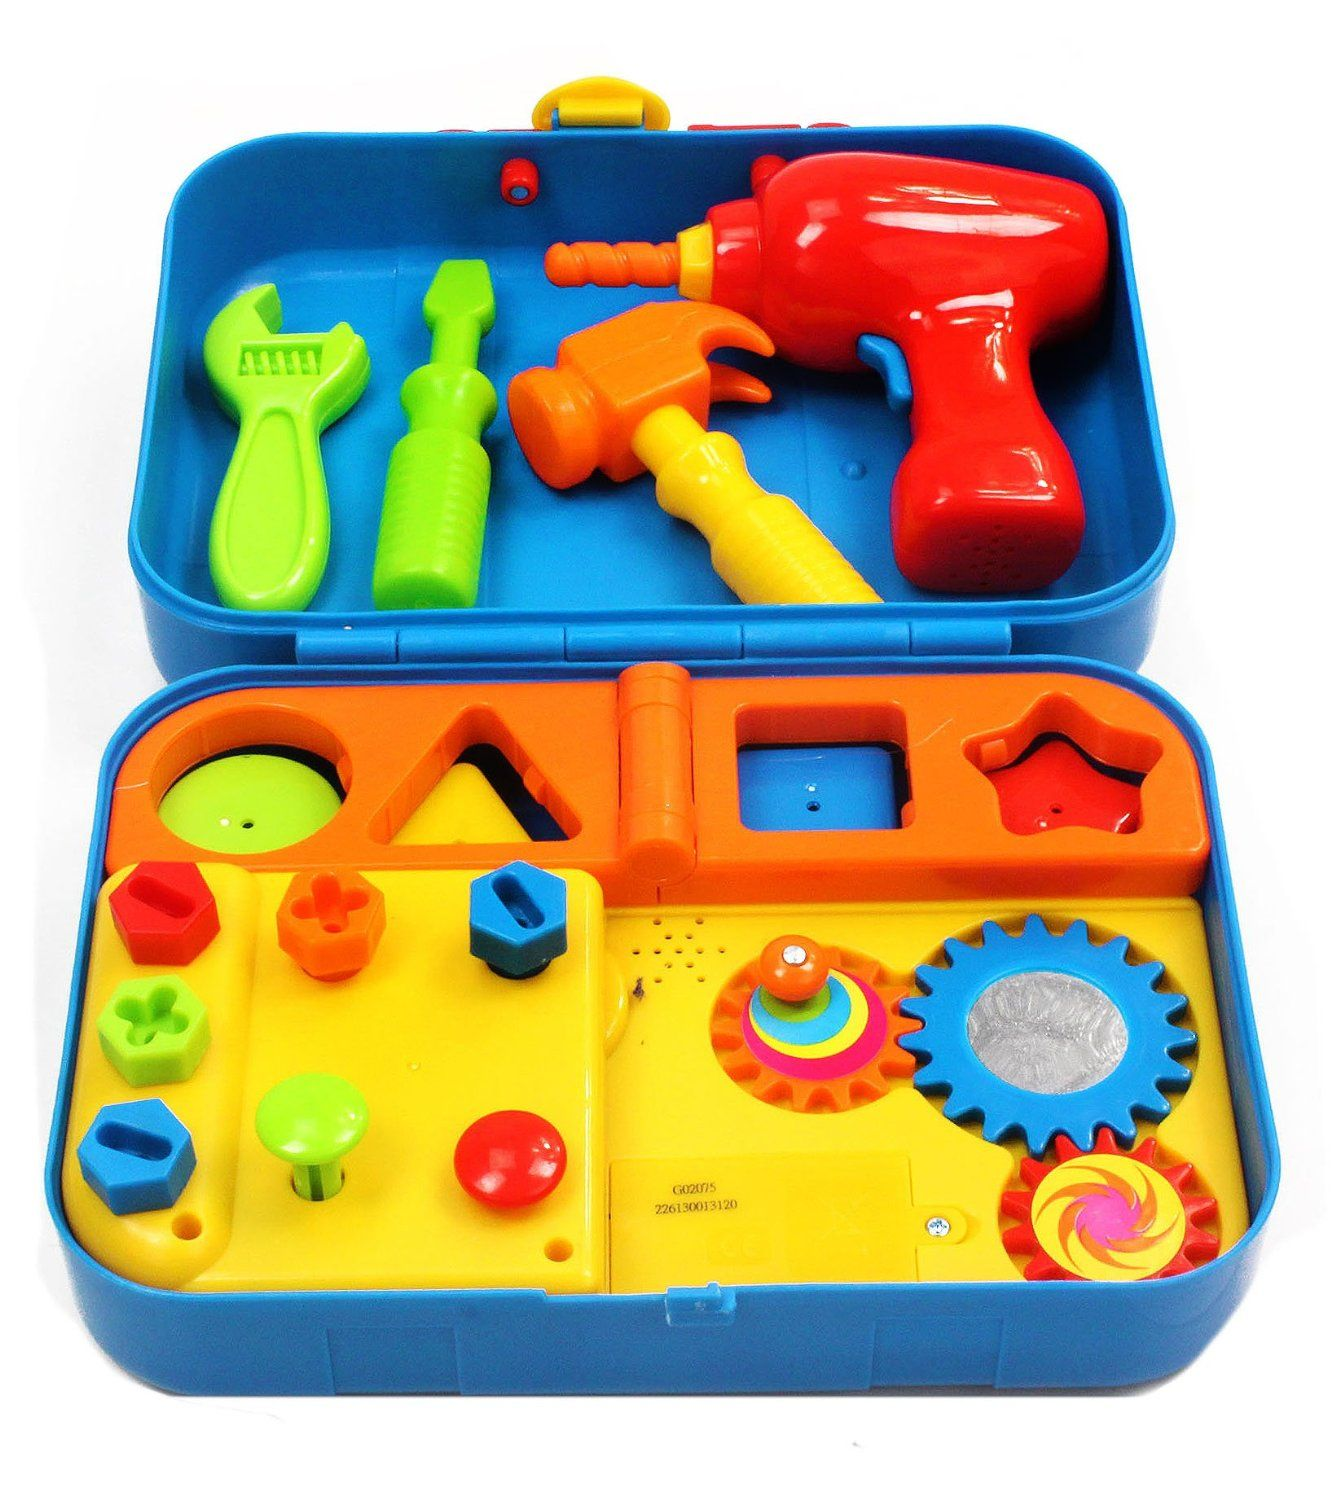 Toys For Boys 2 4 : Best gifts for year old boys in toolbox toy and